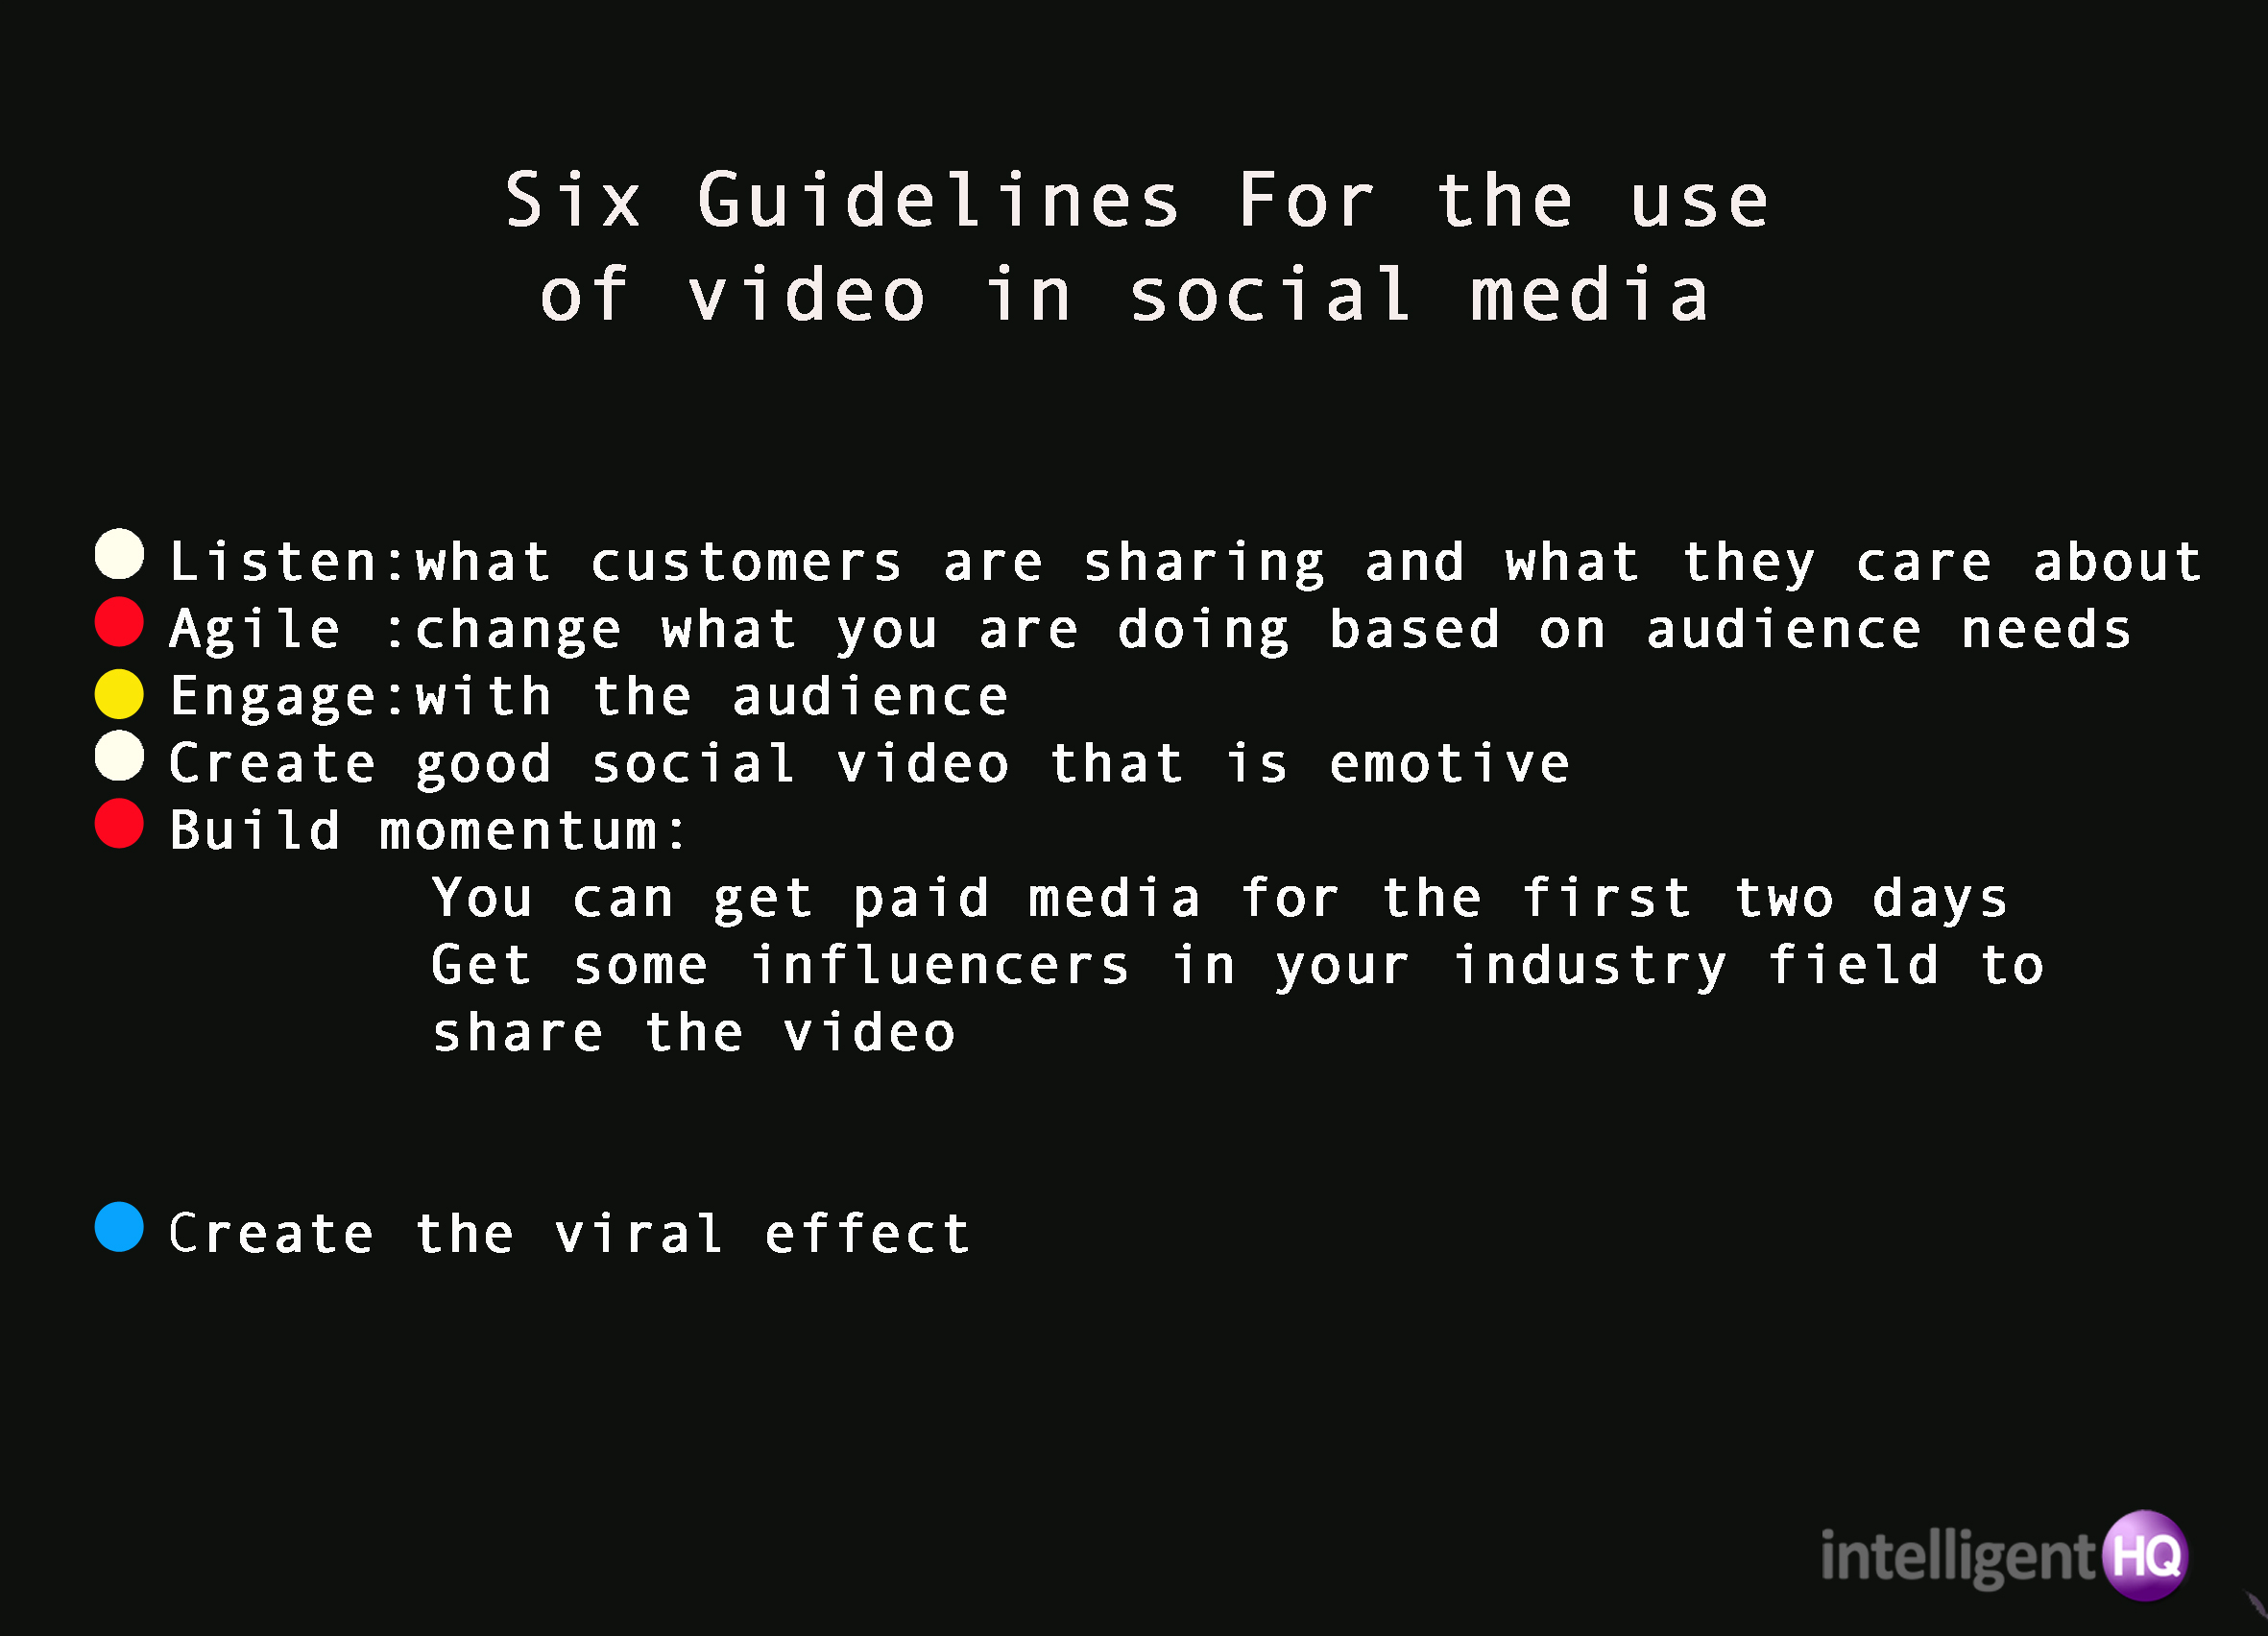 Six Guidelines to use video in social media Intelligenthq